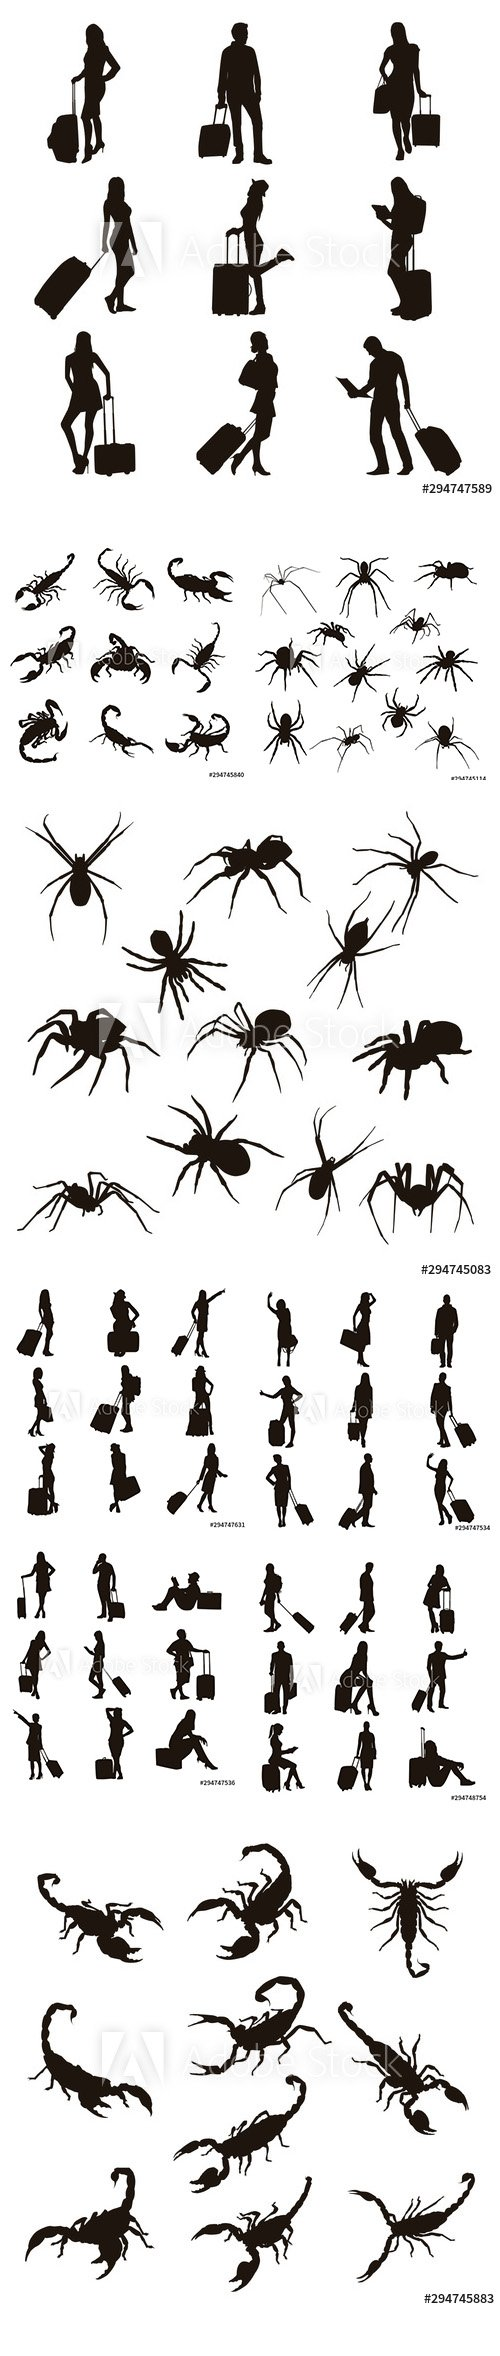 People with Travel Bag, Scorpion and Spider Vector Illustration